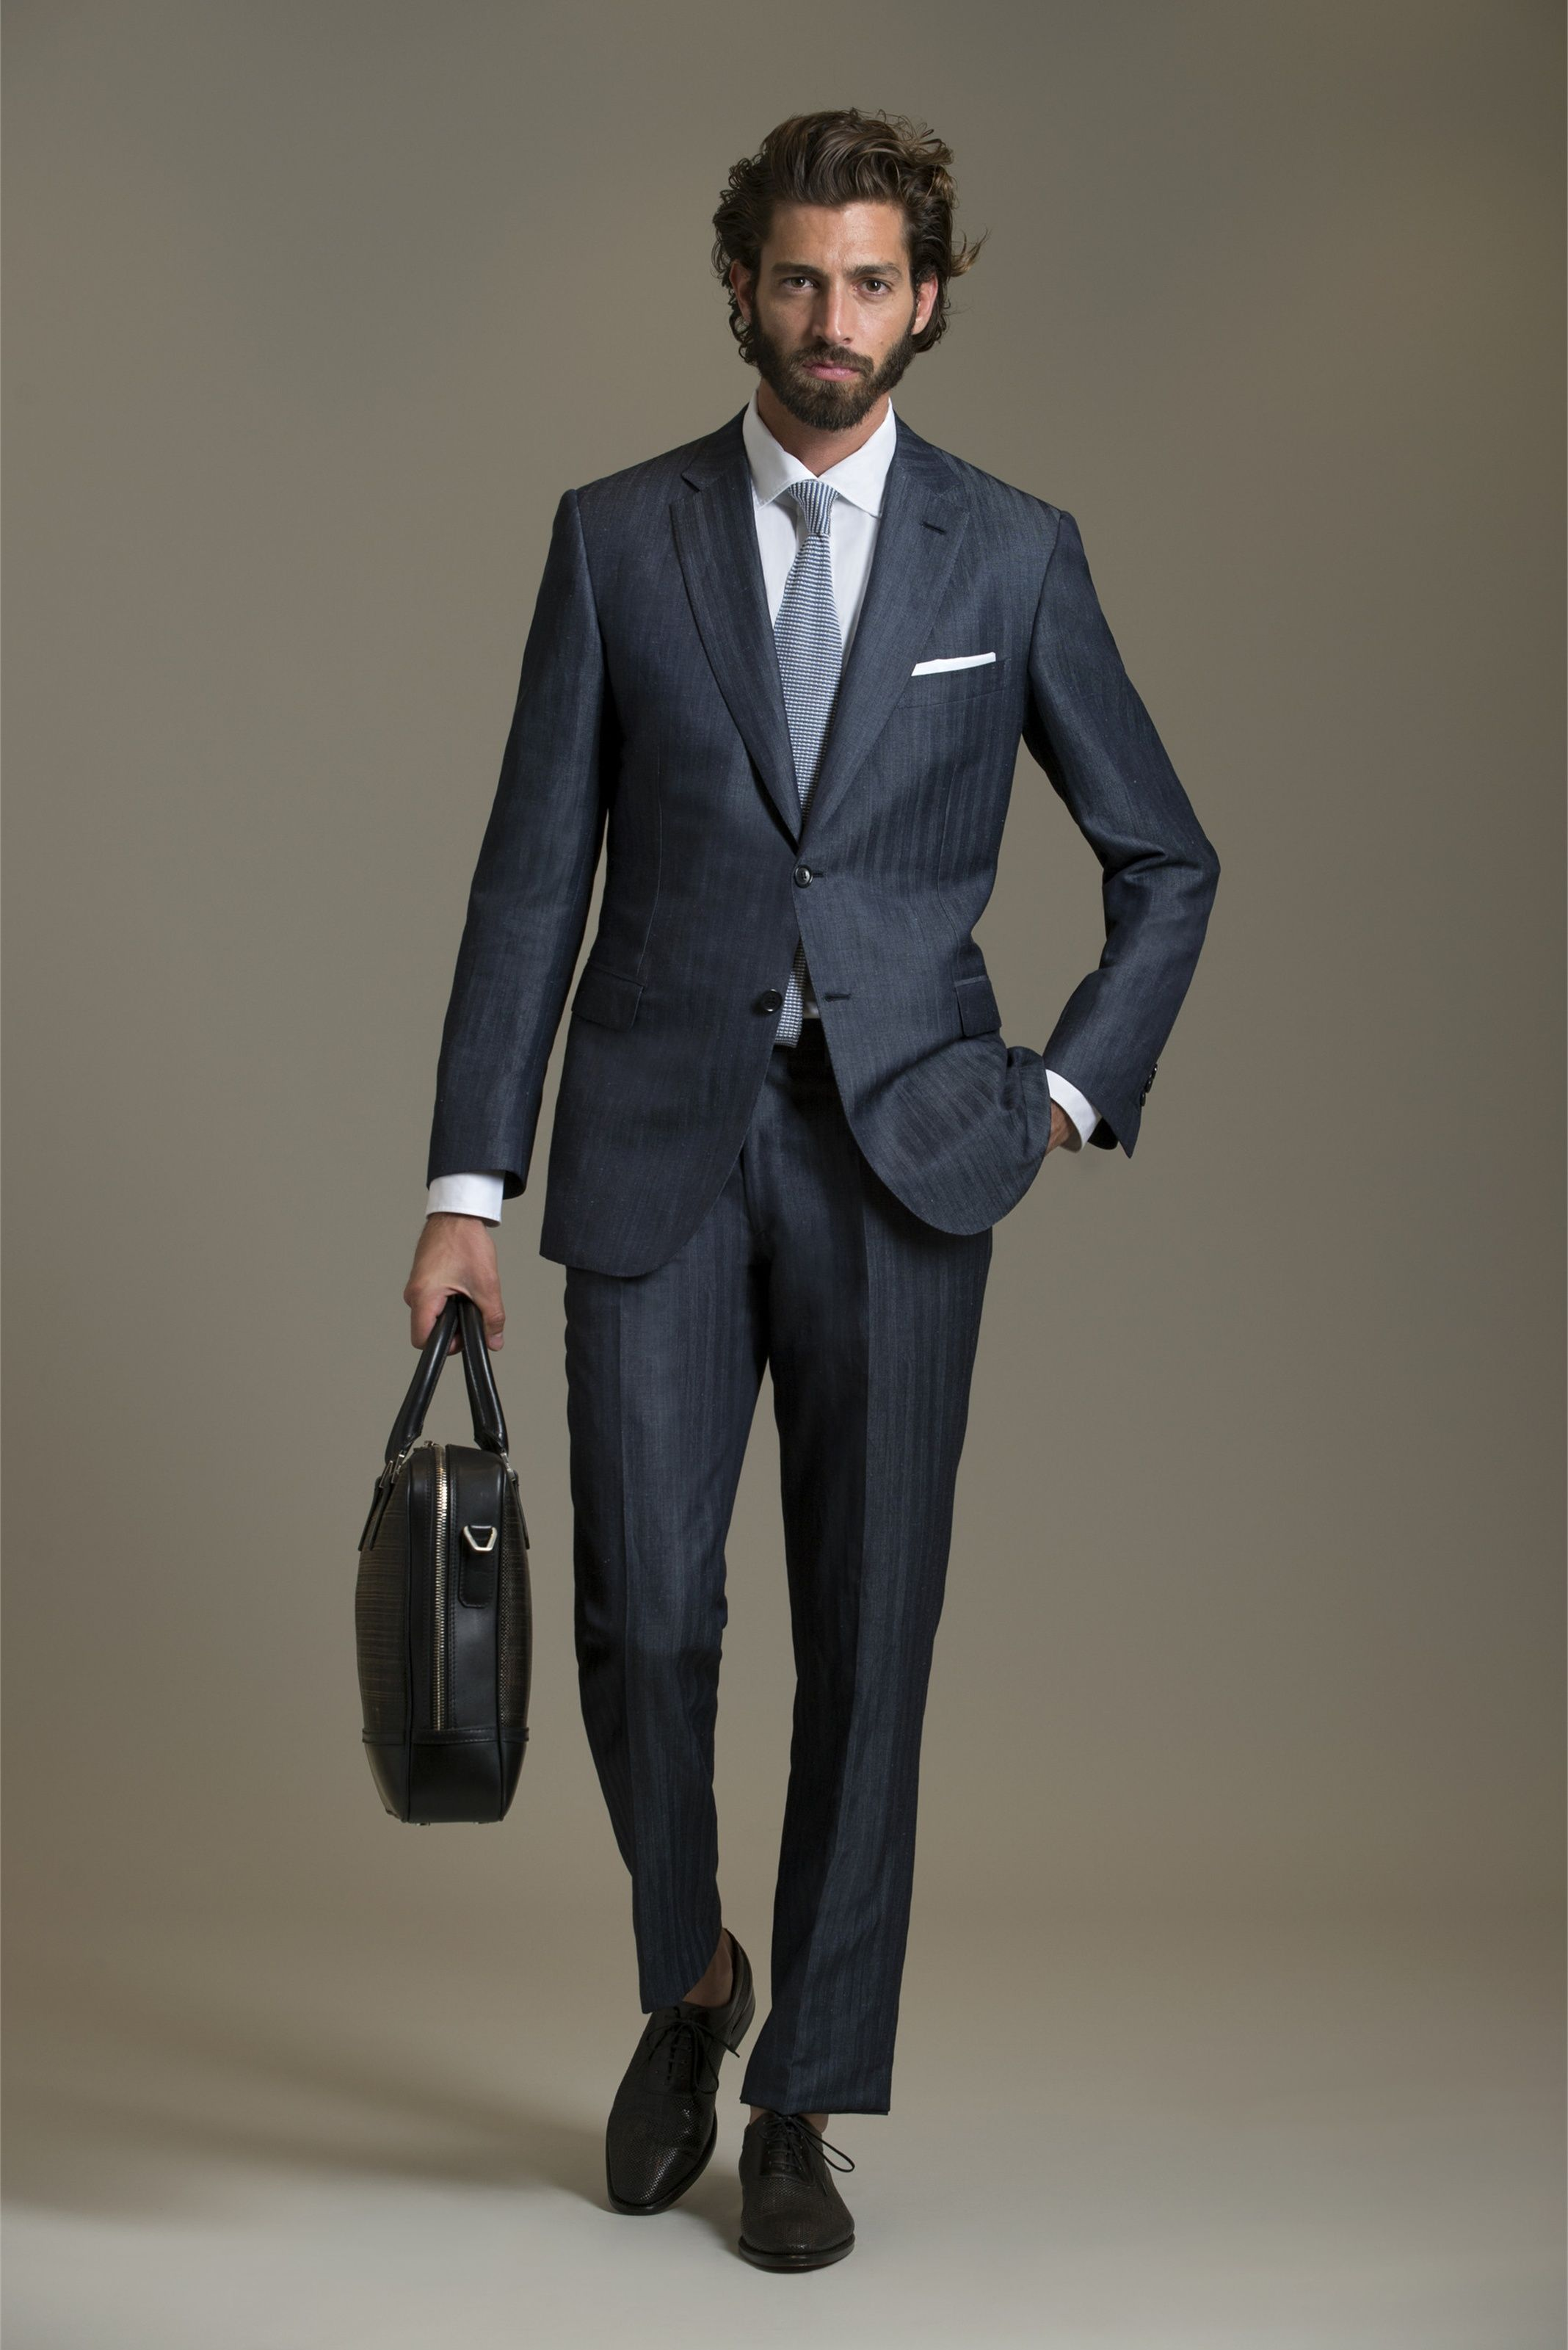 65573affaa Brioni makes the best suits on Earth. Yes, they are expensive but if you  need a job or a new client buy one.